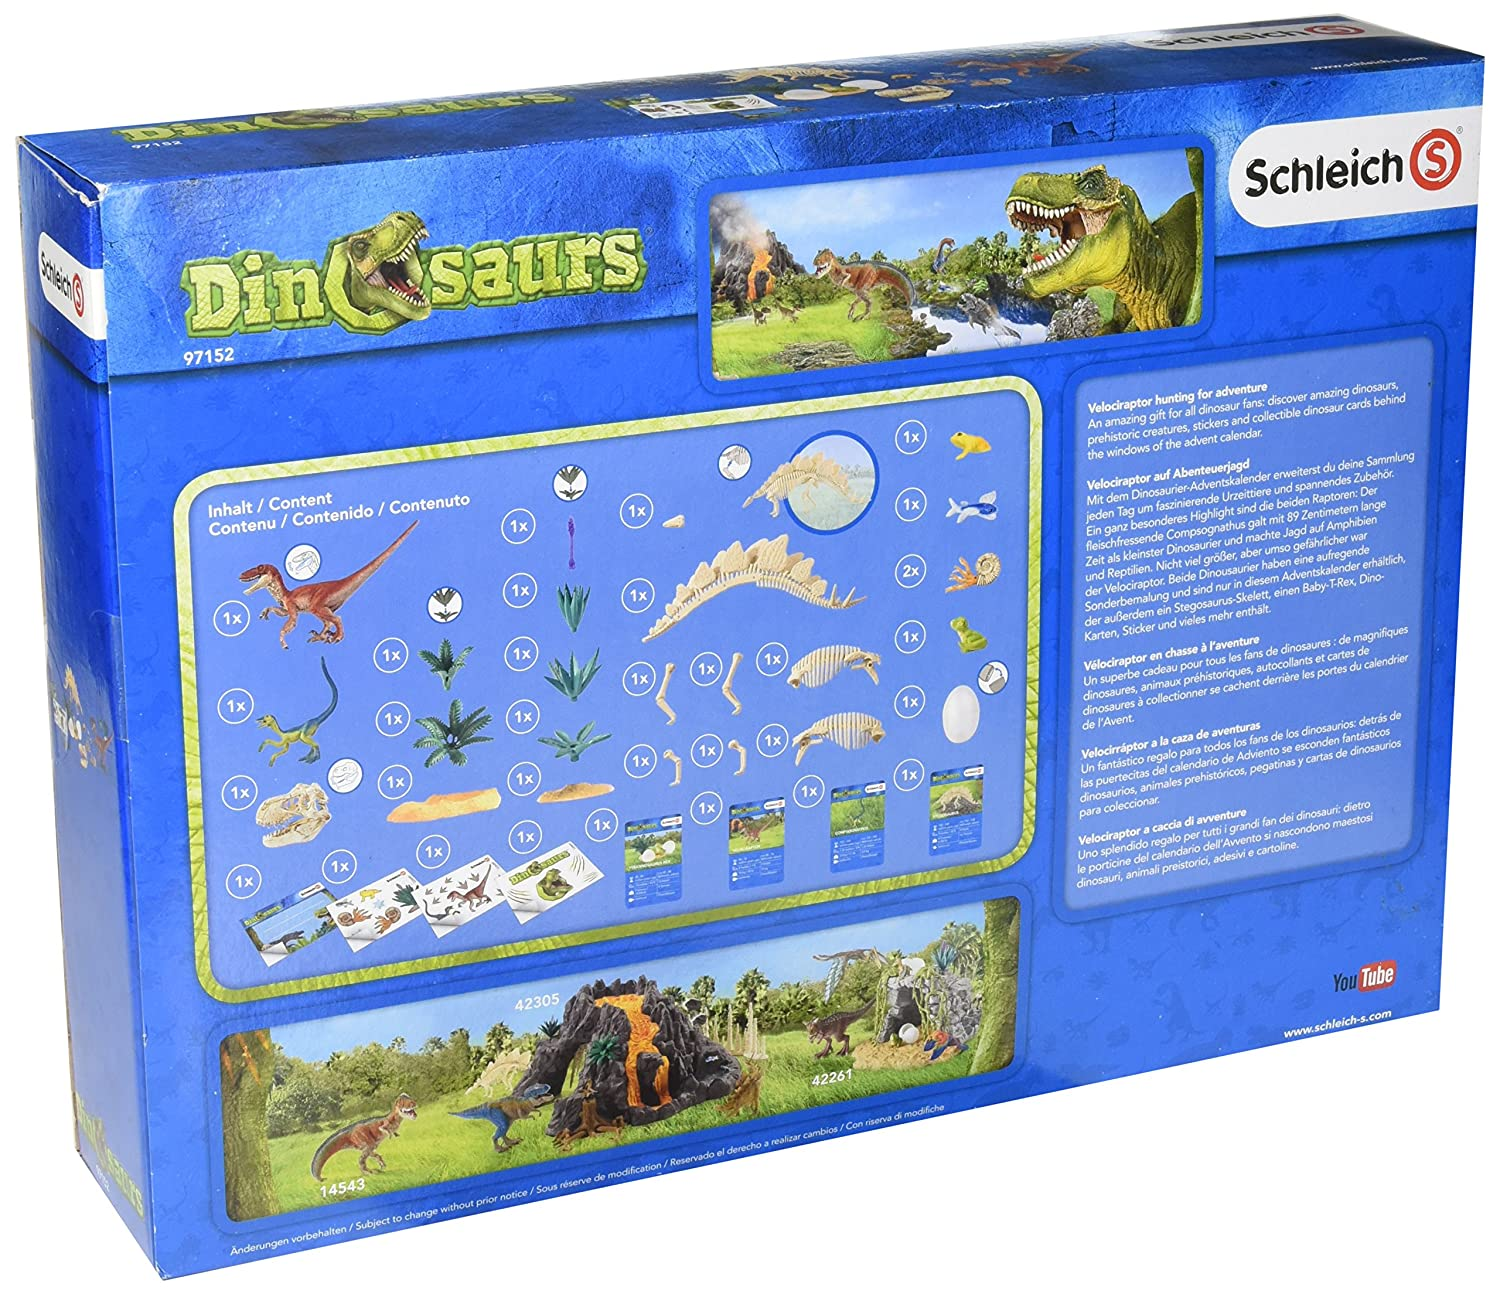 Amazon.com: Dinosaurs 97152 Dinosaurs Advent calendar 2016 ...